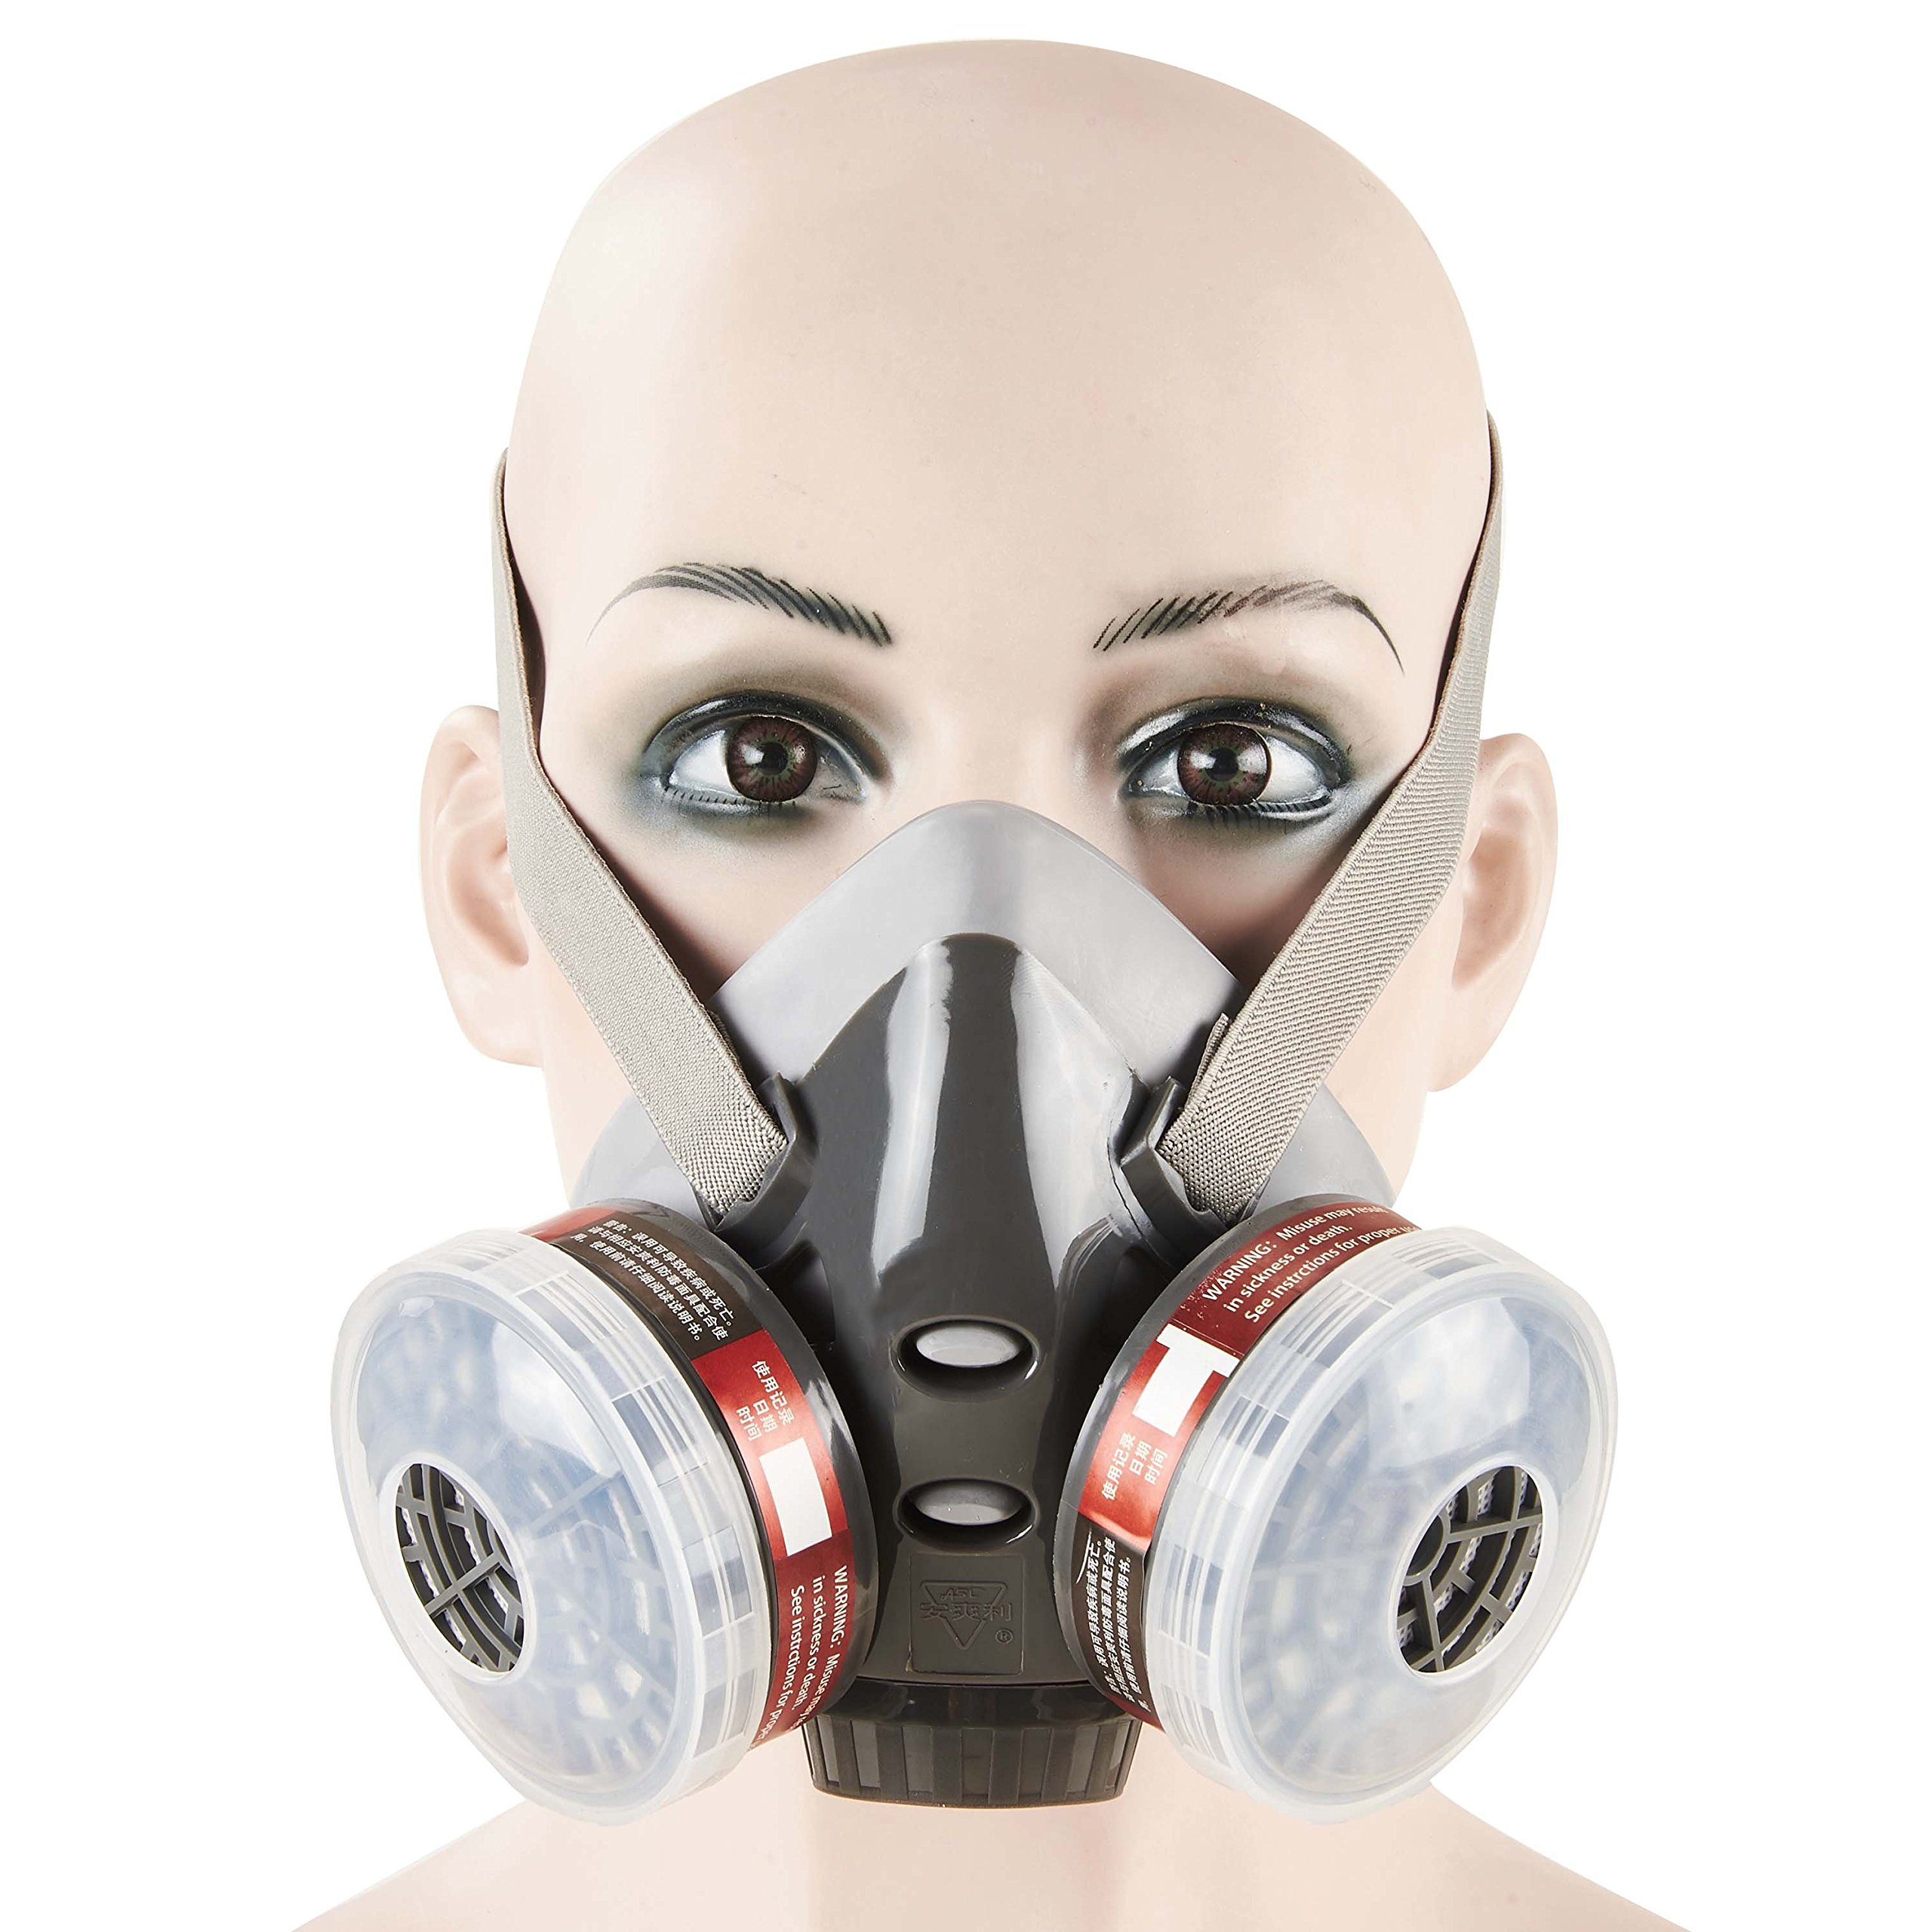 Mufly Respirator Anti -Dust Industrial Mask PM 2.5 Half Face Piece Reusable Respirator Paint Breathing Mask Face Protection by Mufly (Image #1)